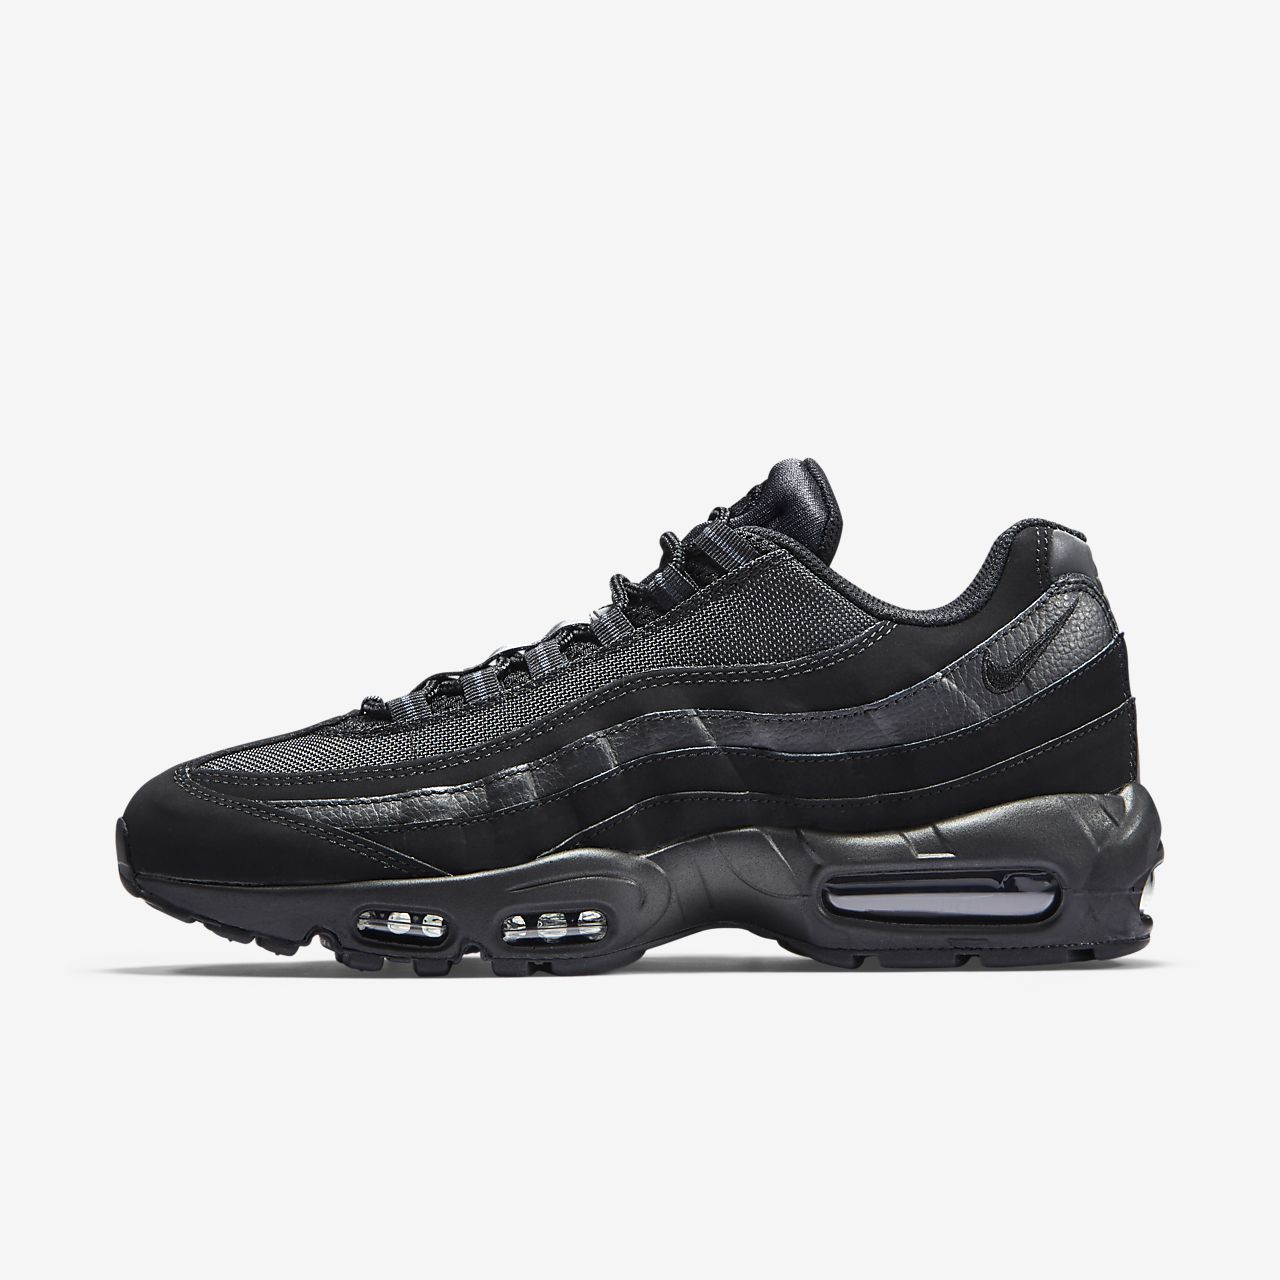 hot sale online dbdc7 d4451 Men s Shoe. Nike Air Max 95